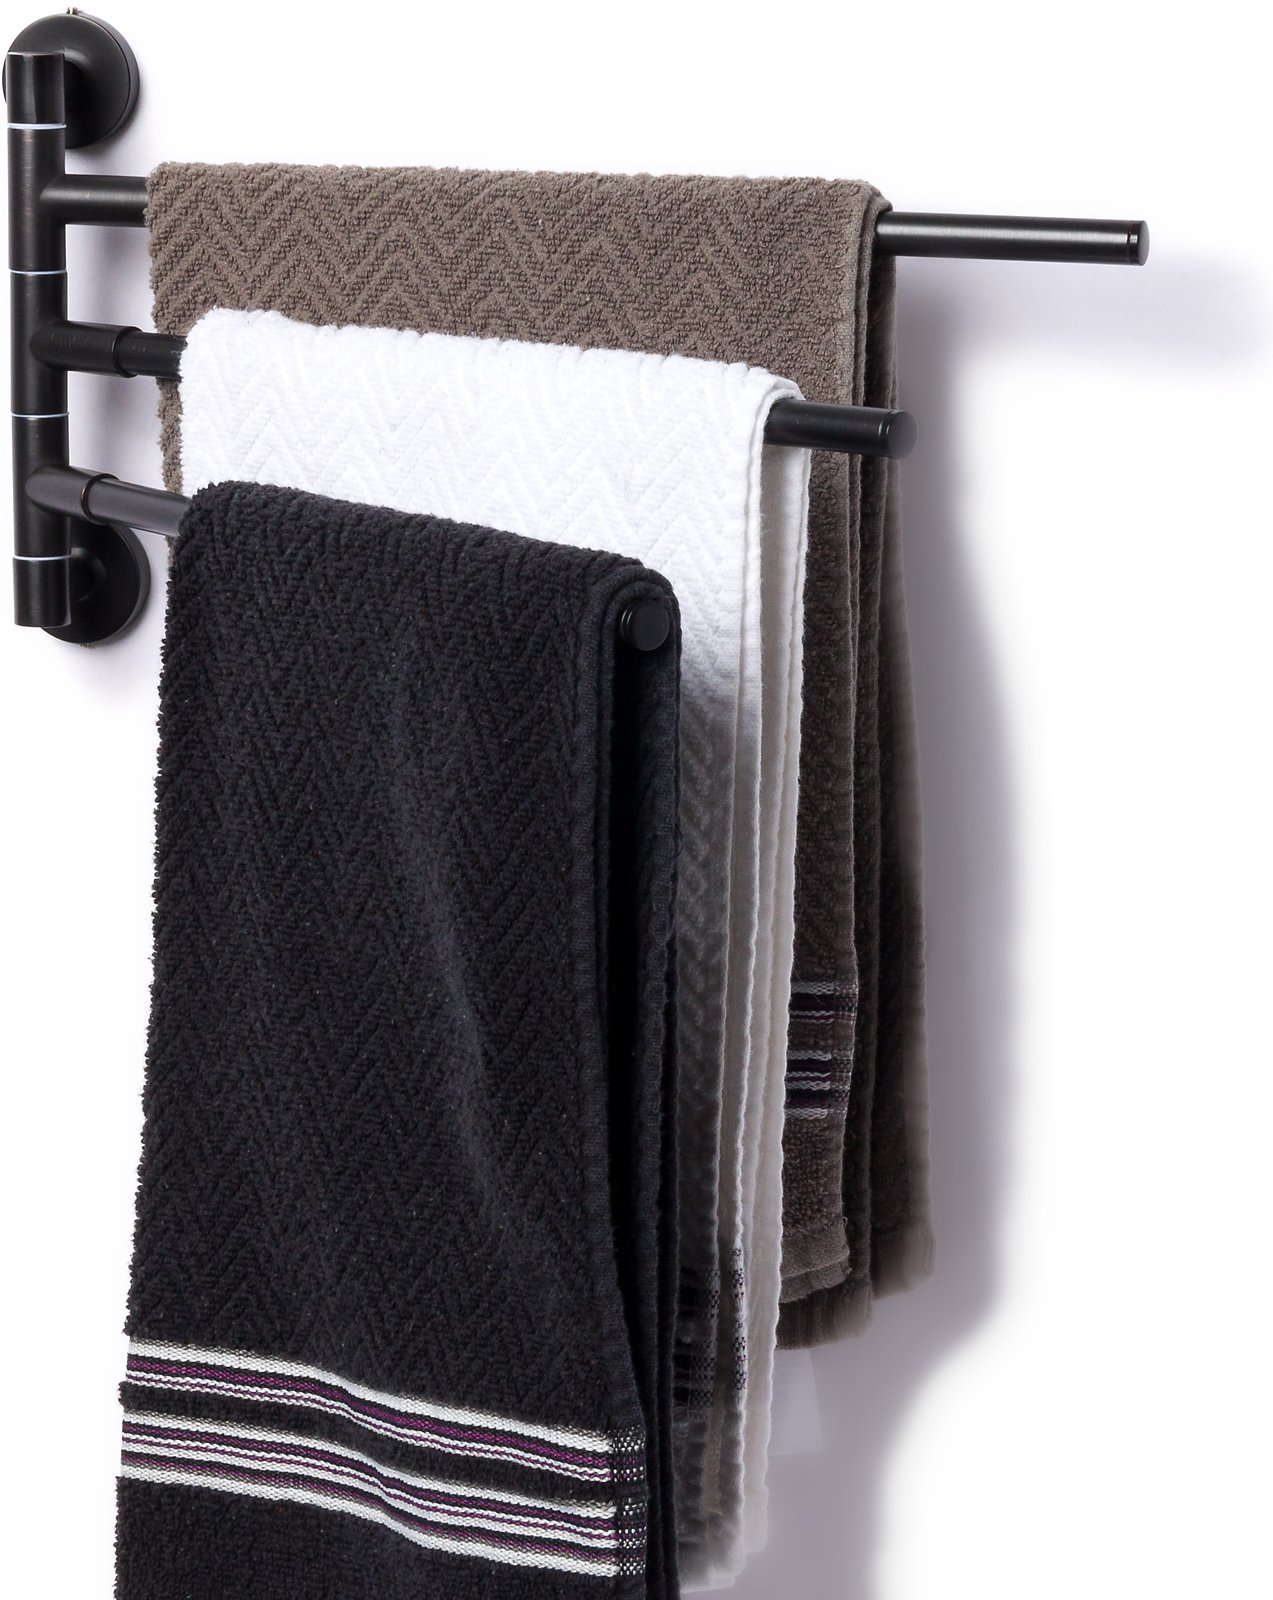 3 Prong Swing Arm Towel Bar - Wall Mounted Stainless Steel Bathroom Towel Rack by Mindful Design (Oil Rubbed Bronze, 13 inches) by Mindful Design